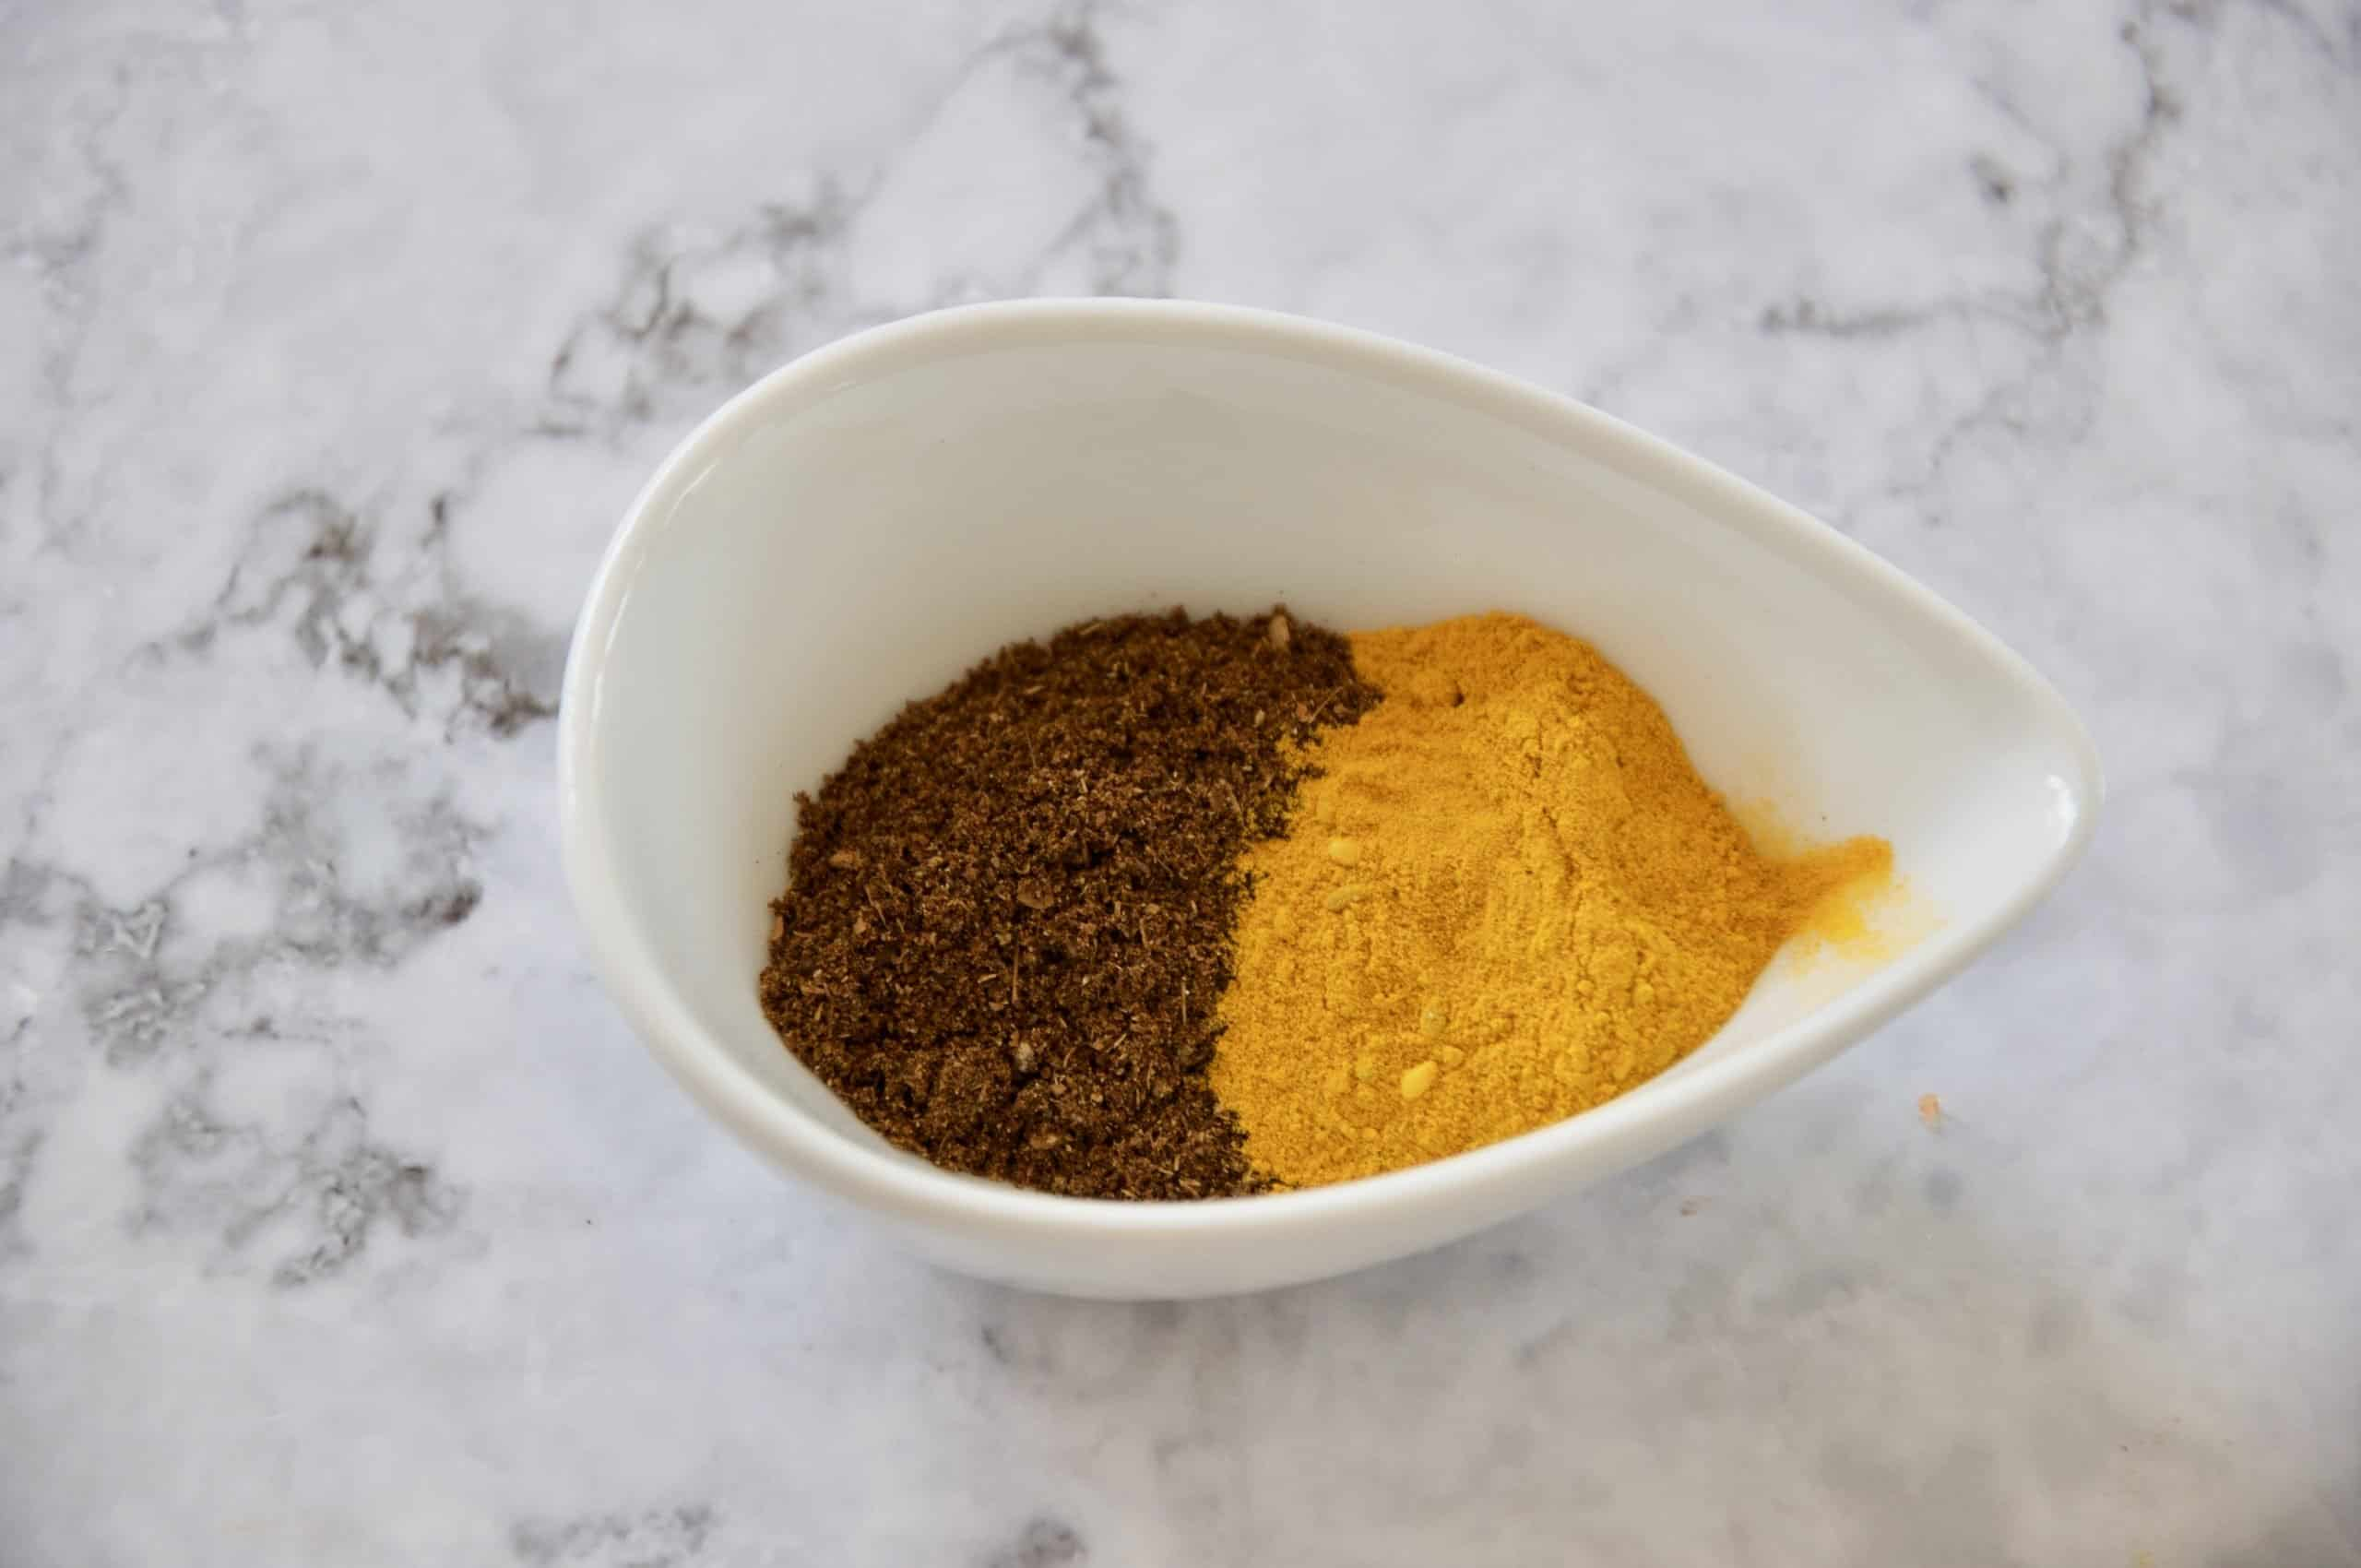 ground spices and turmeric at the opposite end in a white bowl to make Roasted Cauliflower Salad with Garlic Yoghurt Dressing